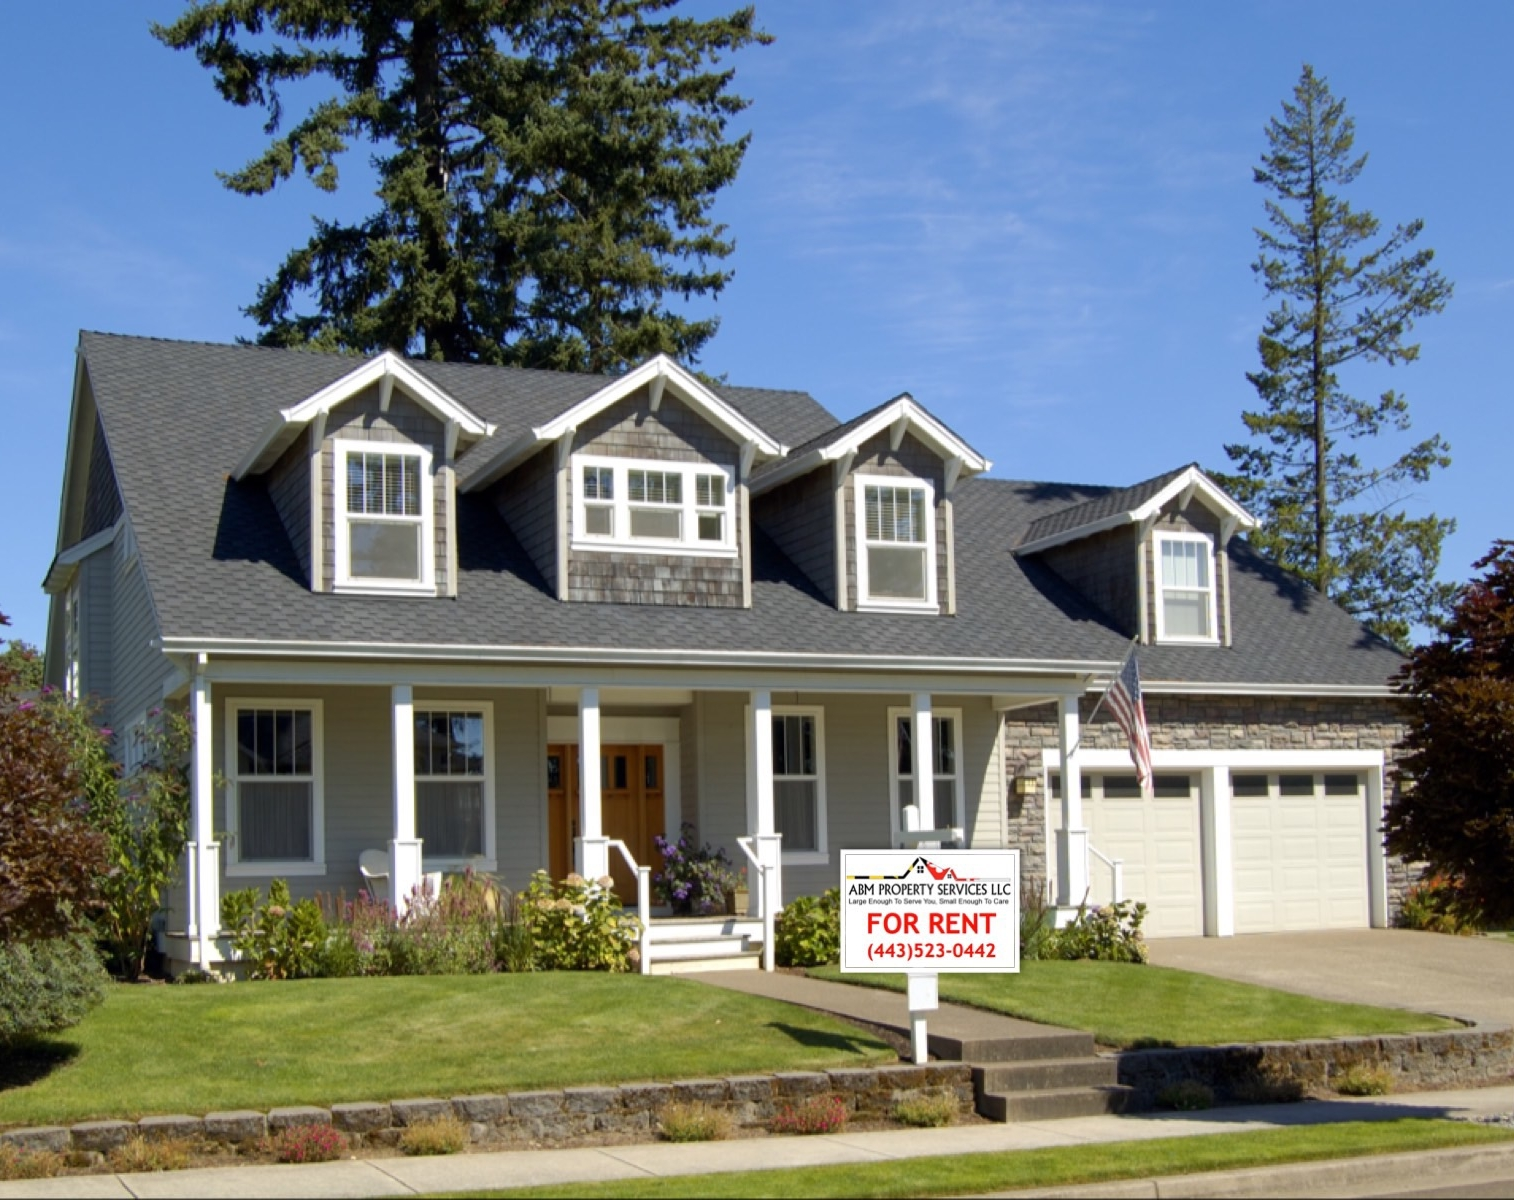 house with rental sign.jpg